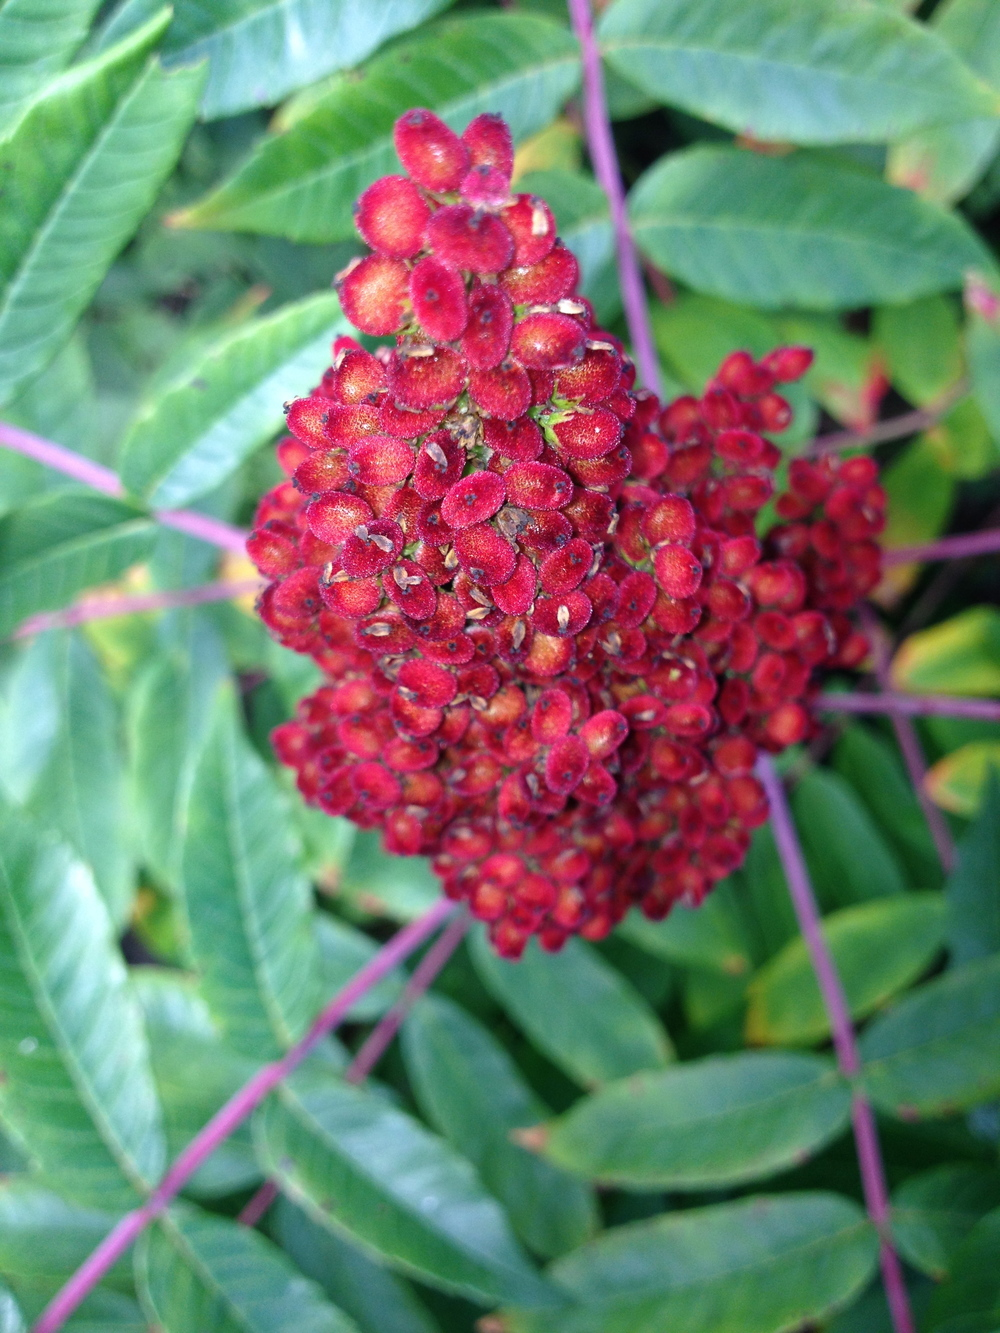 Rhus glabra,  smooth sumac. While in the same family, the shrubby sumacs are very different to the potentially dermatitis inducing  Toxicodendron vernix,  or Poison Sumac.